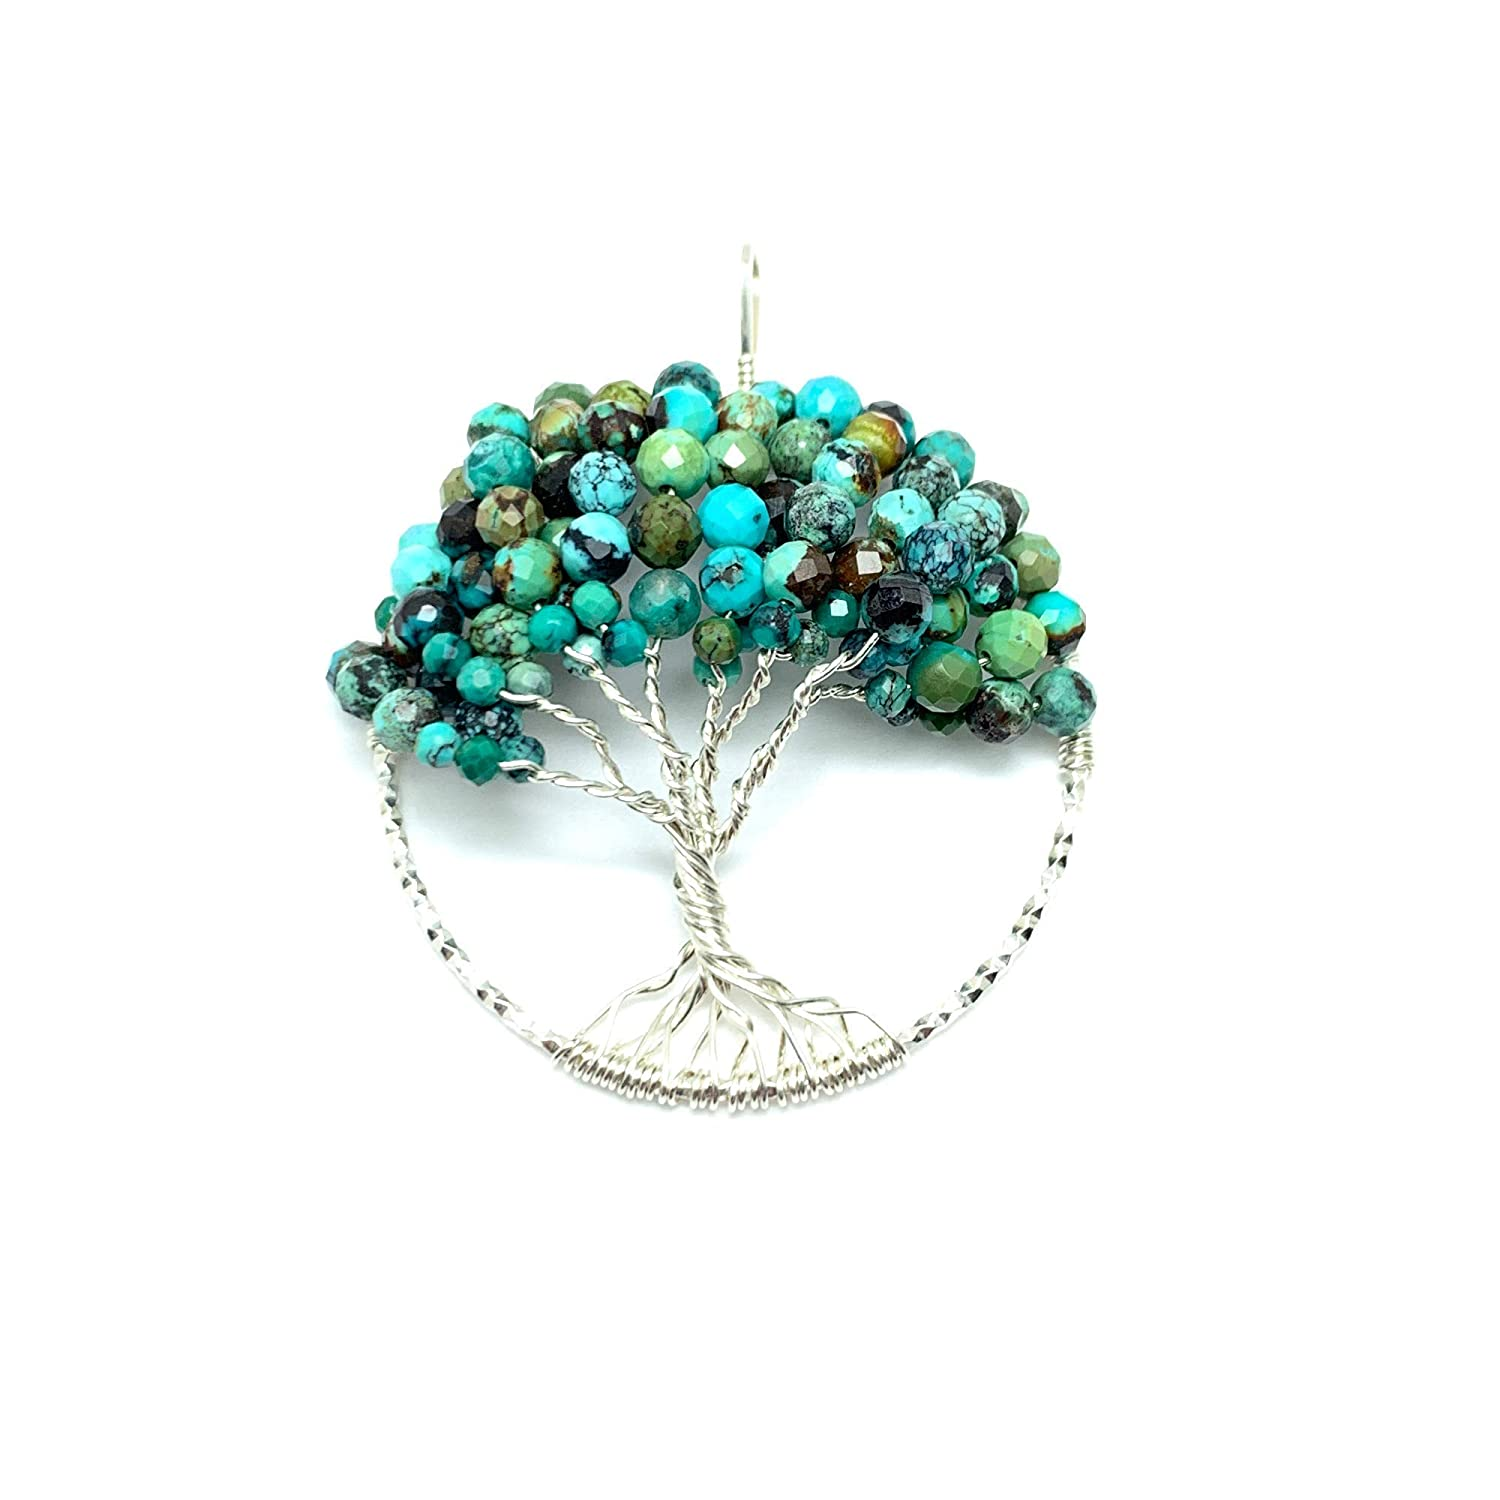 Sterling Silver Turquoise Pendant December Birthstone Jewelry Natural Gemstone Jewelry Genuine Turquoise Necklace Gift For Girlfriend